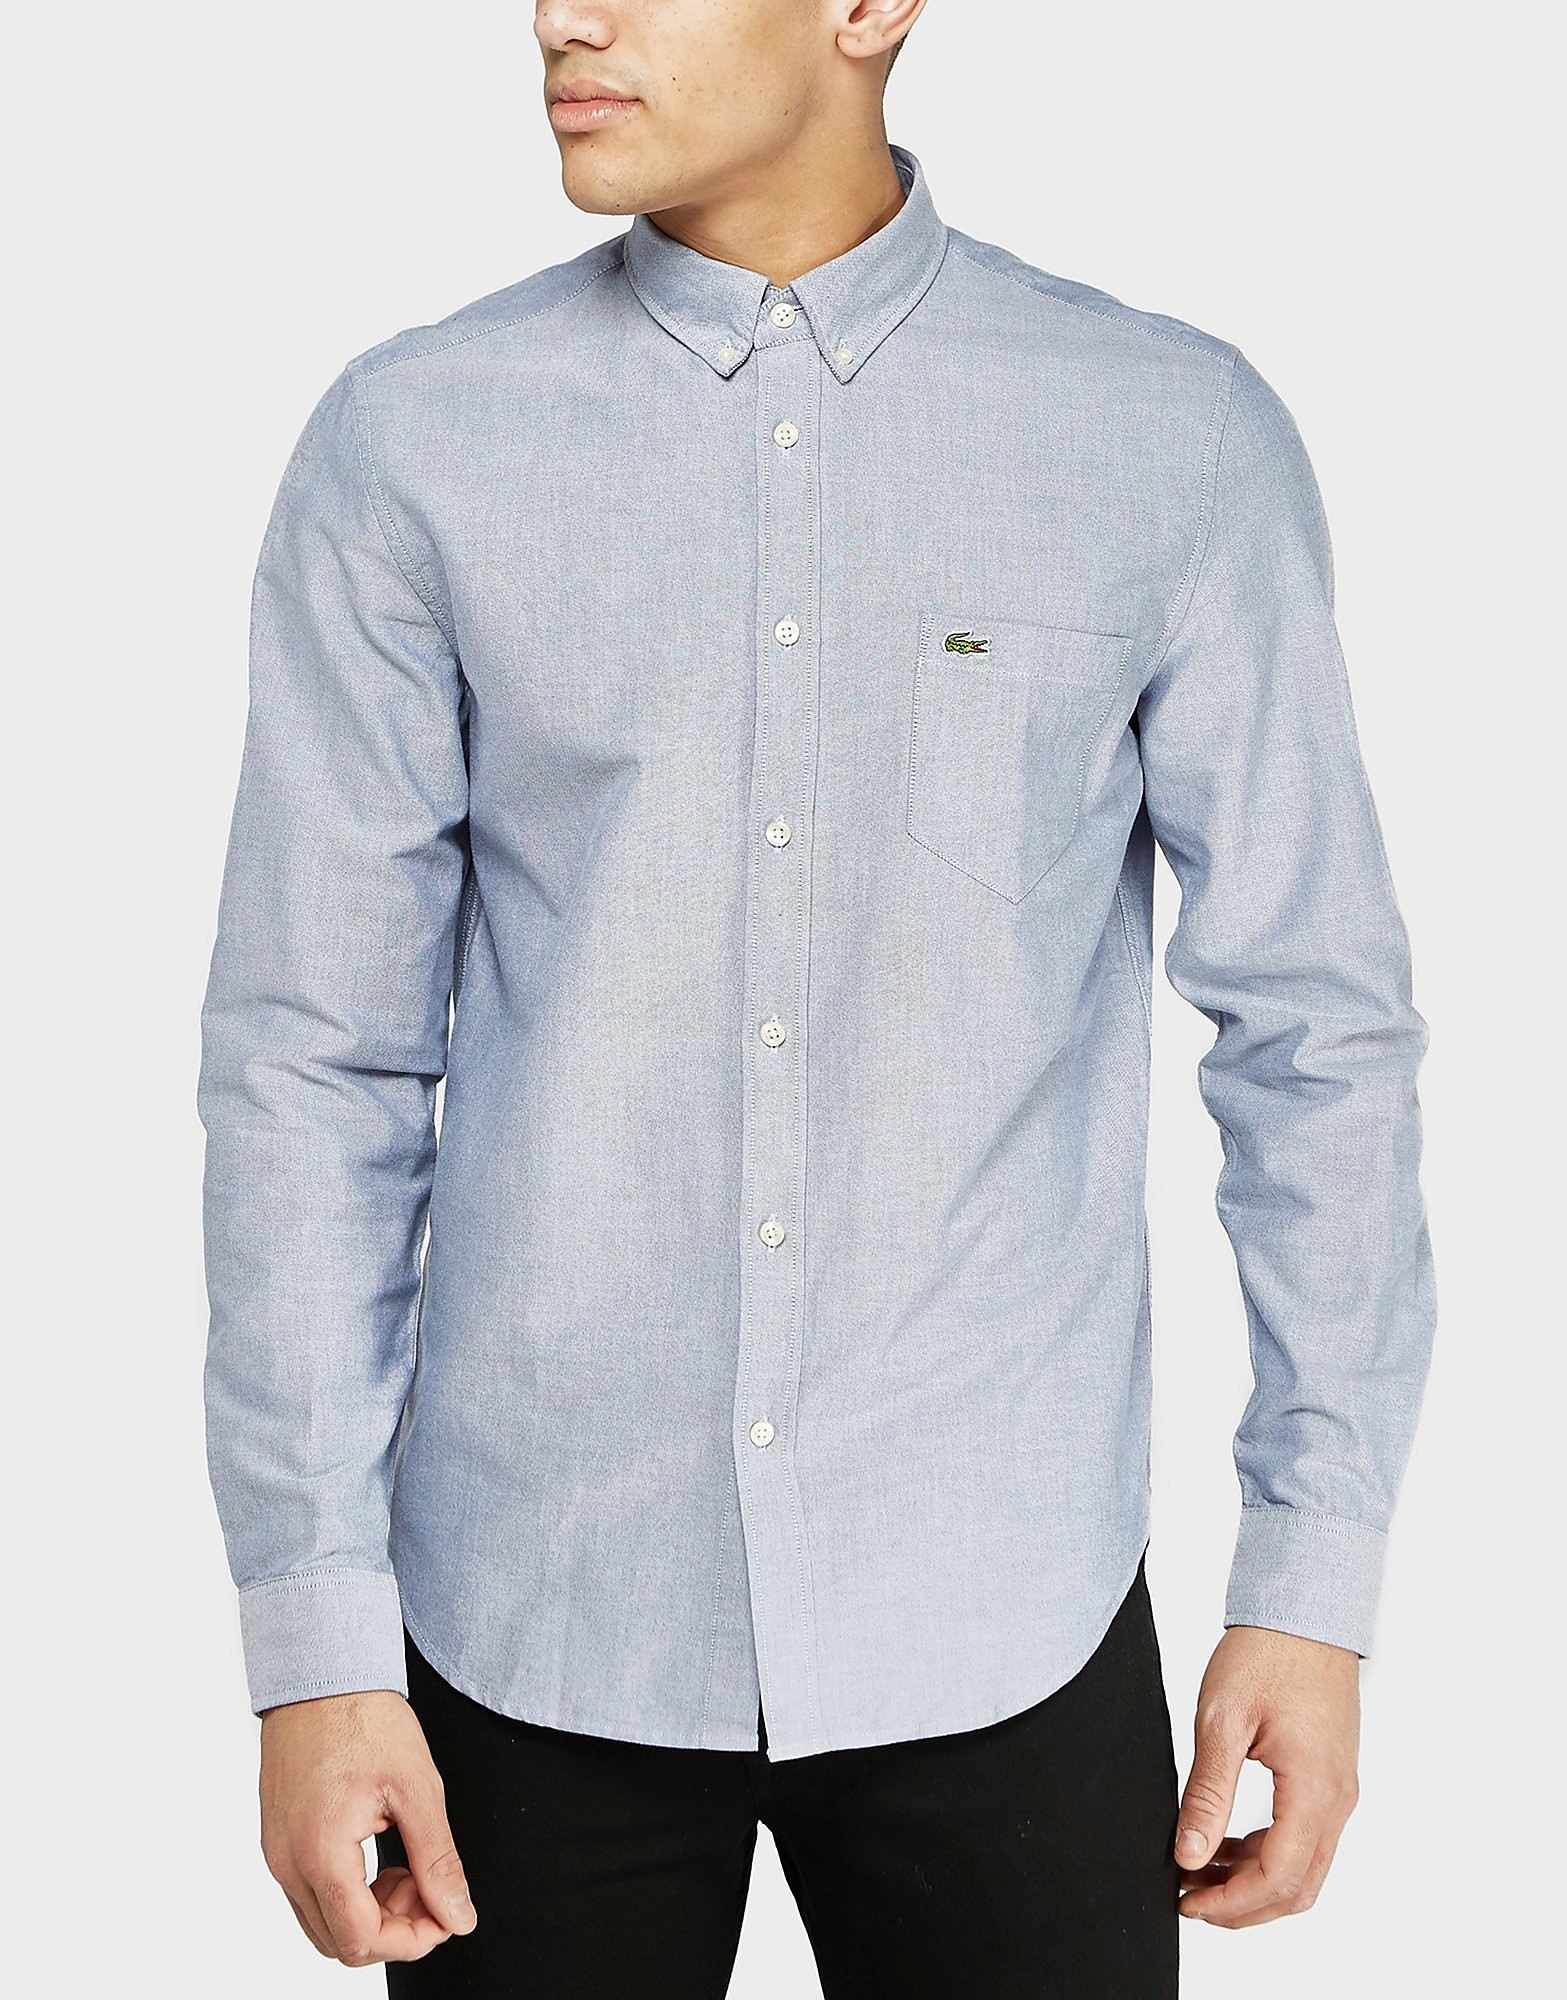 Lacoste Oxford Shirt